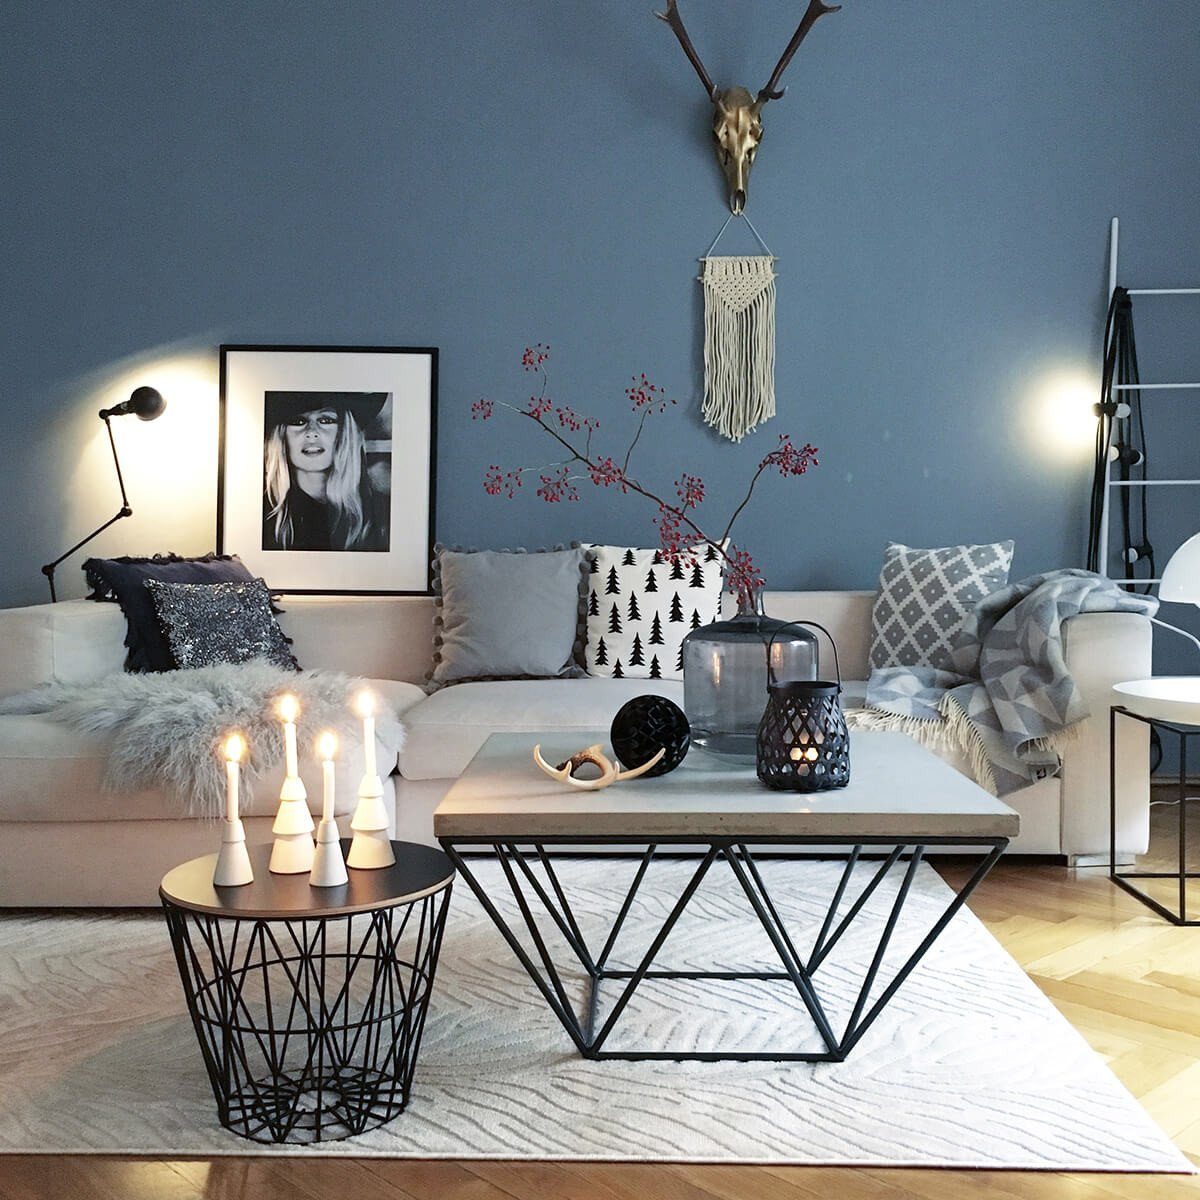 Living Room Coffee Table Decor Fresh 37 Best Coffee Table Decorating Ideas and Designs for 2019